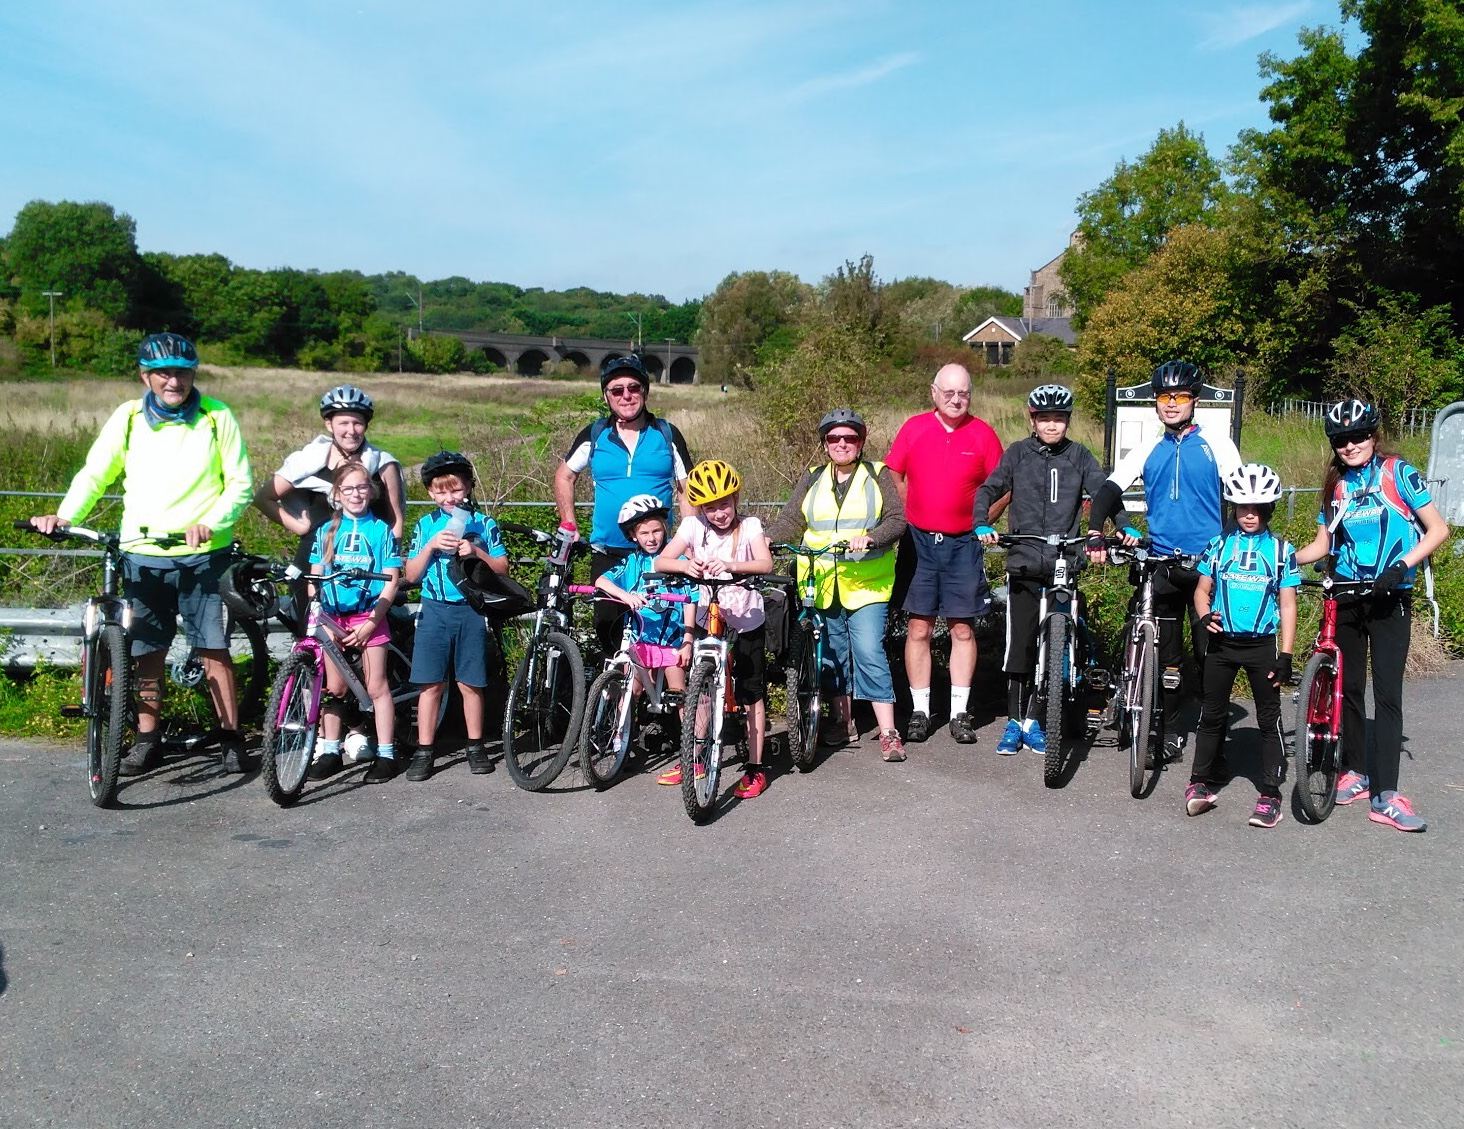 Ride Report – Family Ride to Belhus Woods